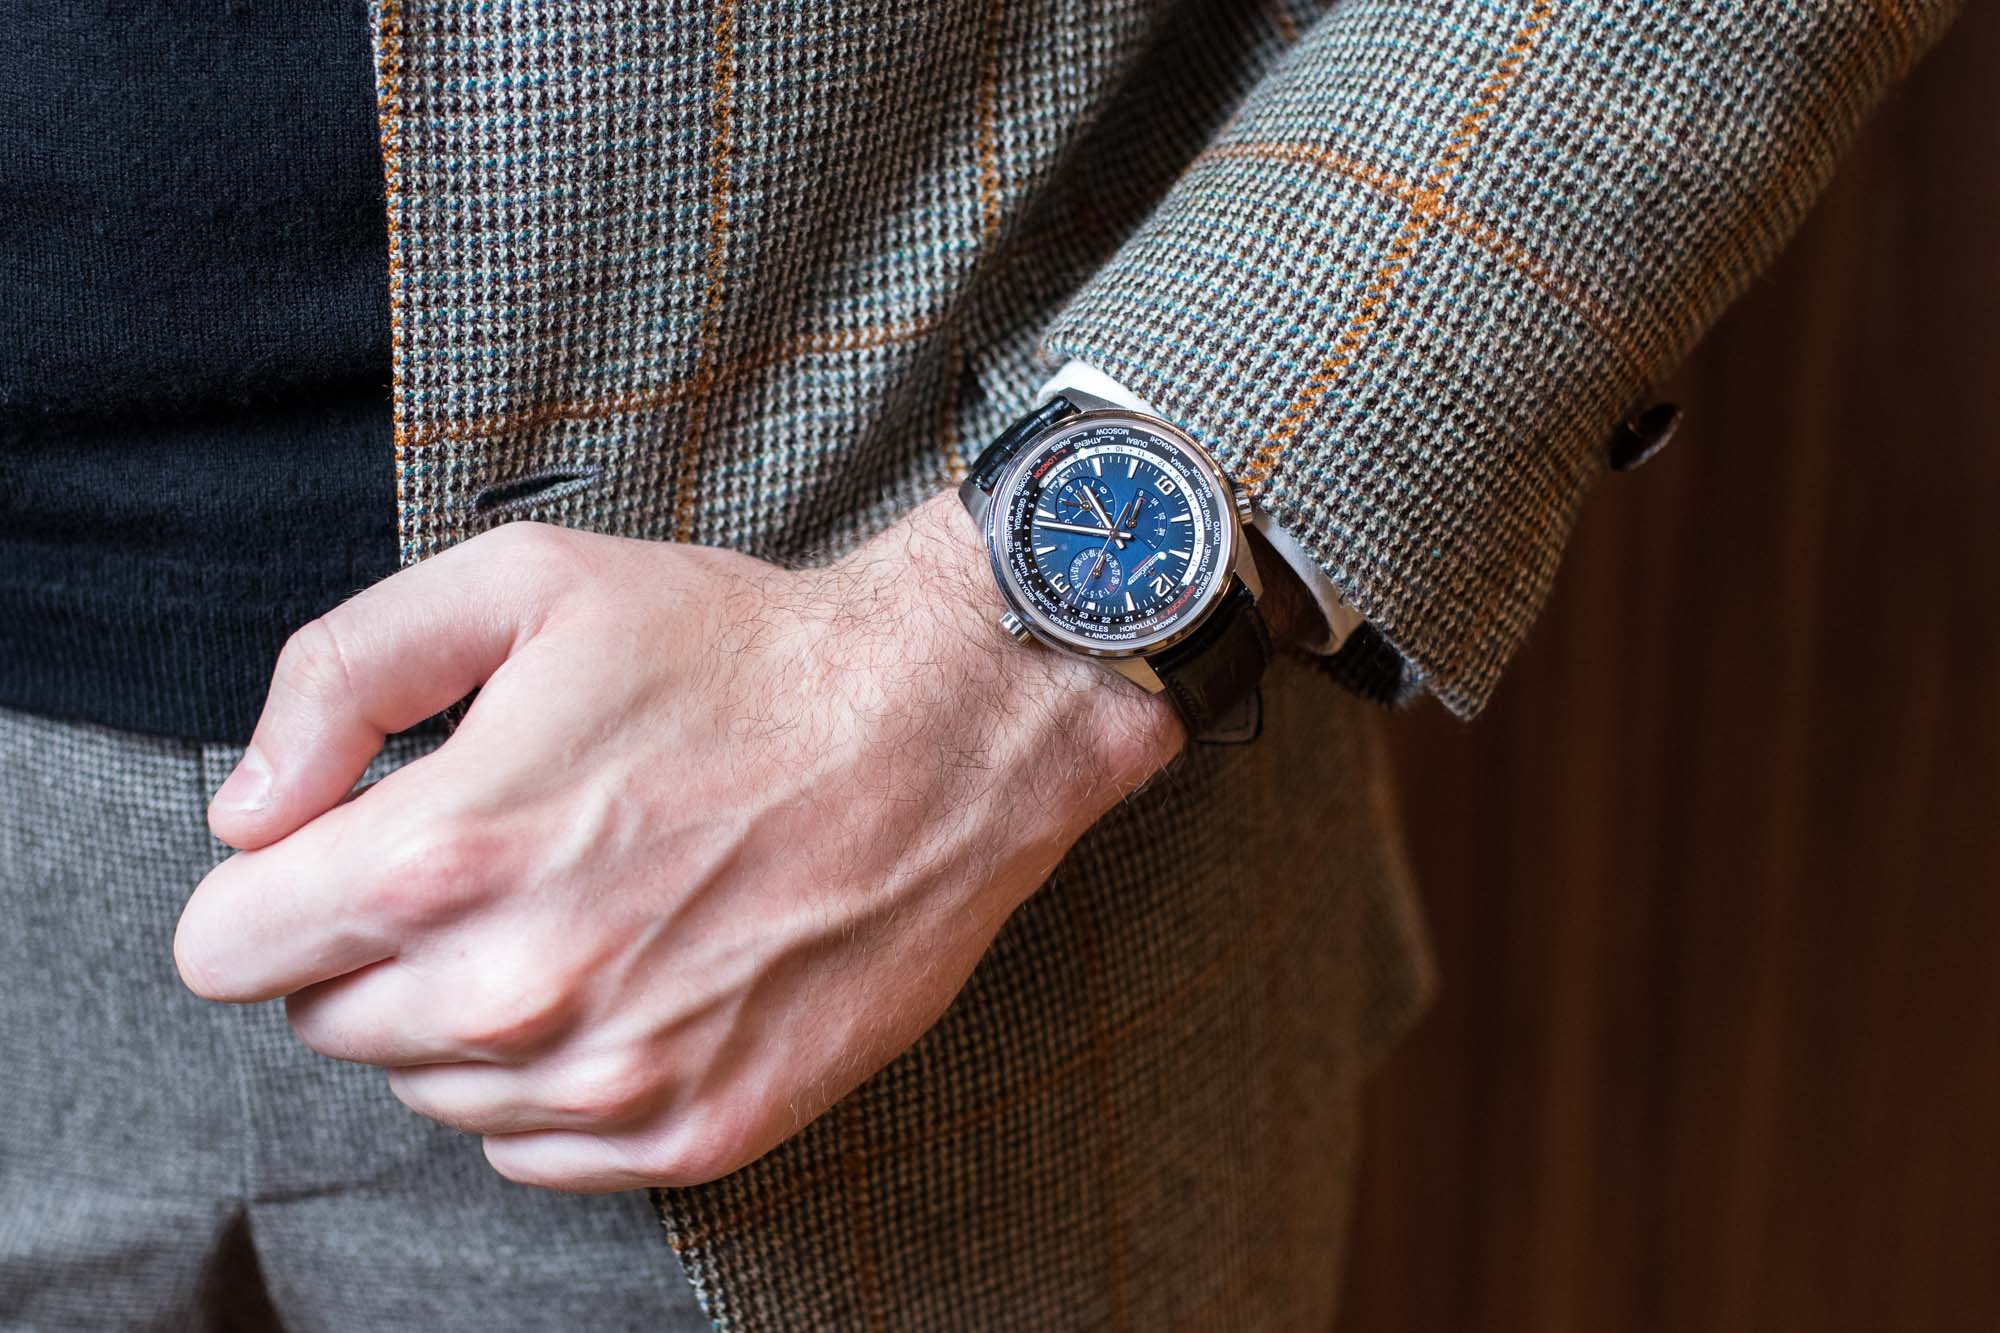 SIHH 2019 - Jaeger-LeCoultre Polaris Geographic WT